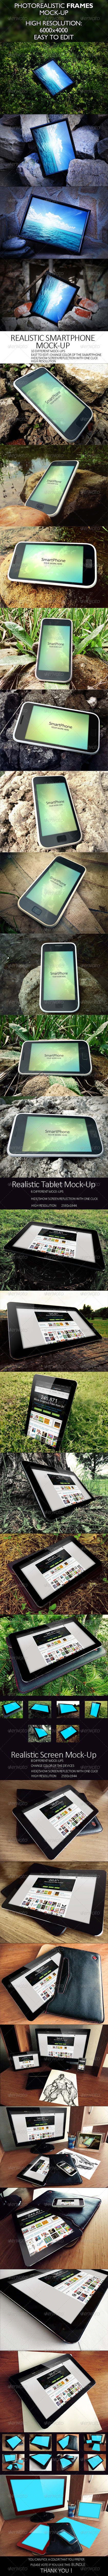 GraphicRiver 4 in 1 Bundle Realistic Screen Mock Up 7973980